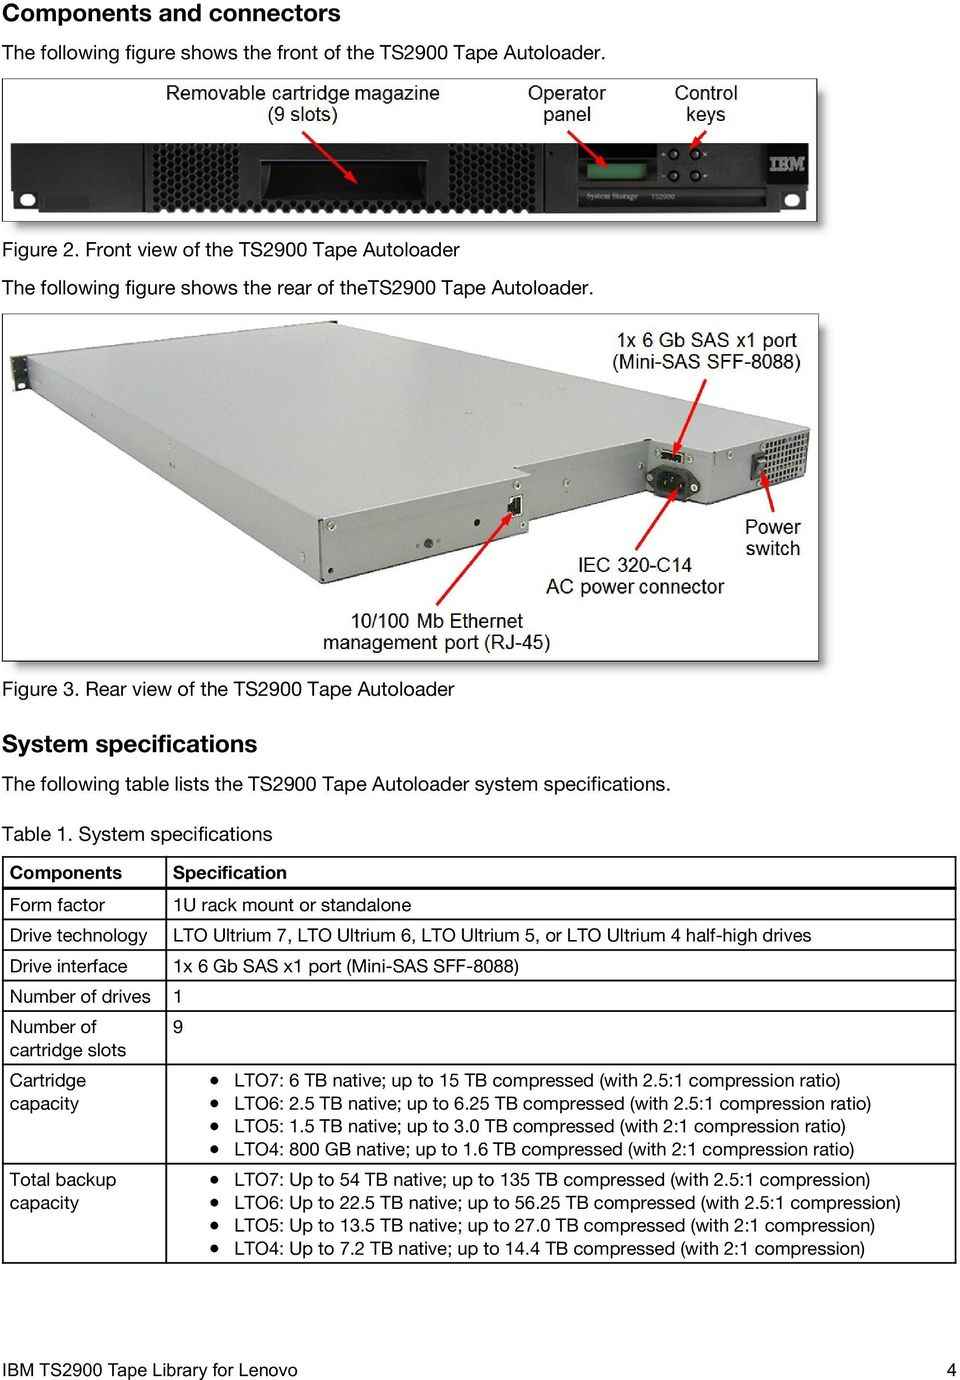 IBM TS2900 Tape Library for Lenovo Product Guide - PDF